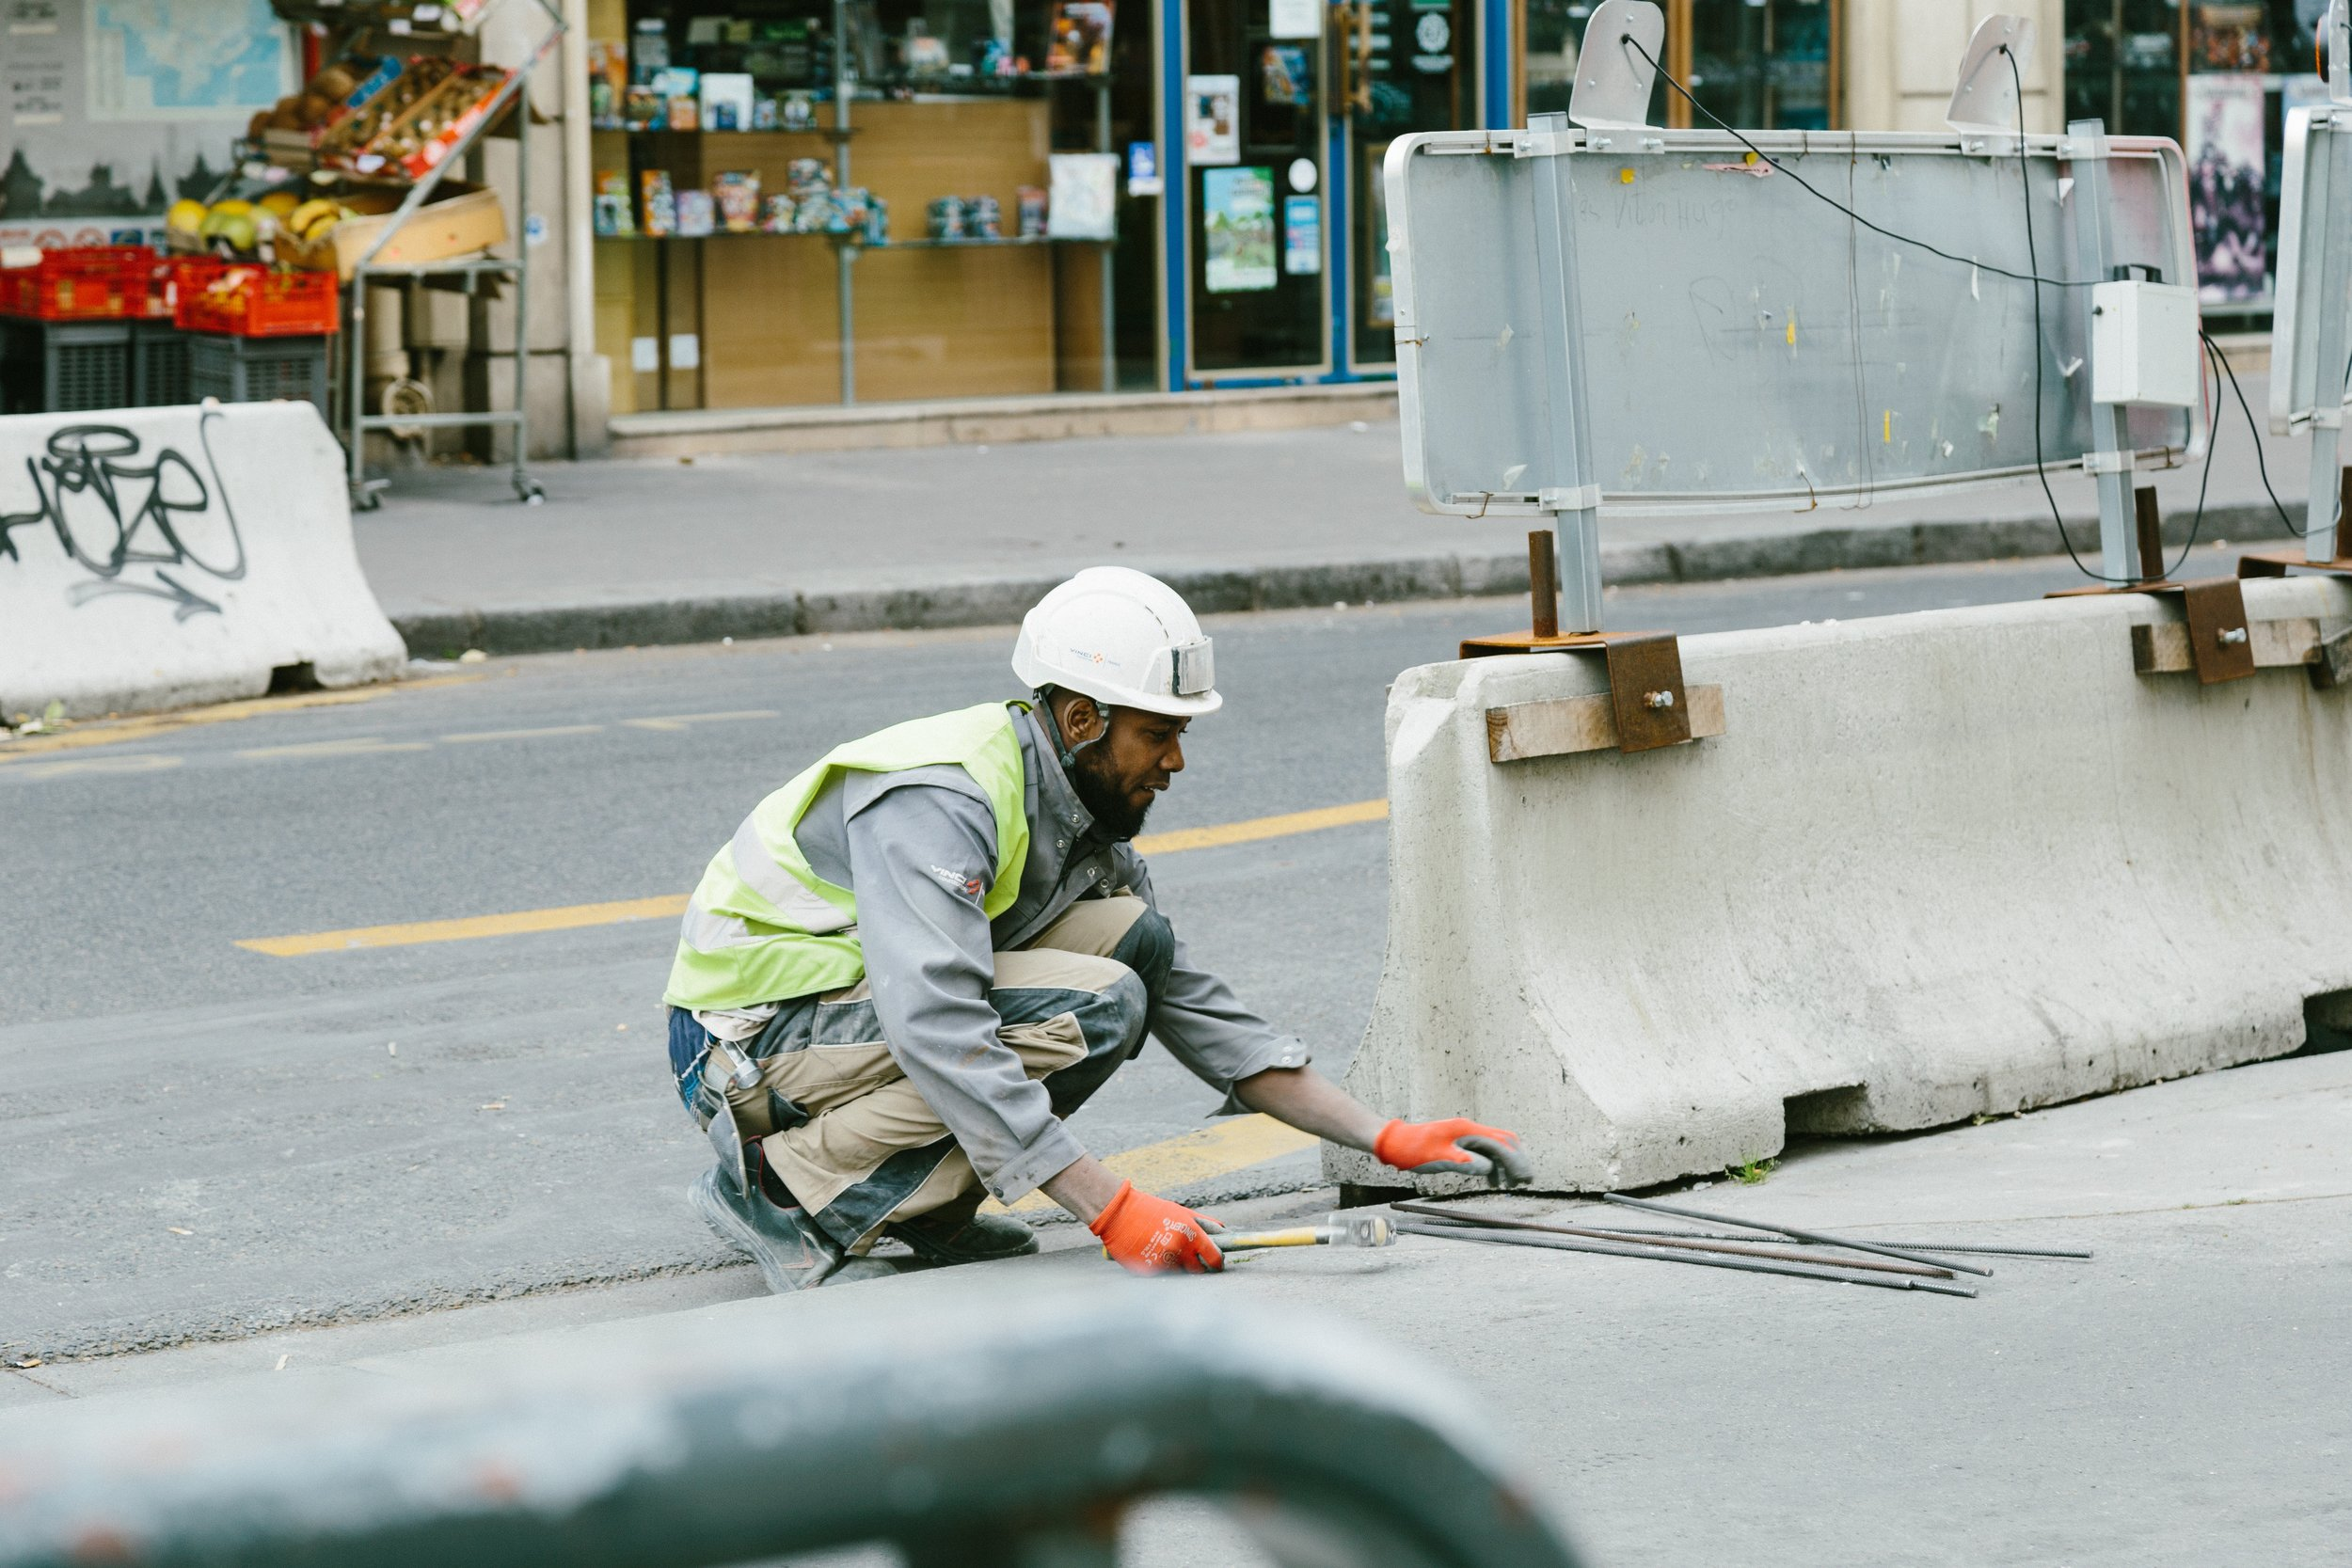 National Work Zone Awareness Week is the perfect time to revisit your safety procedures